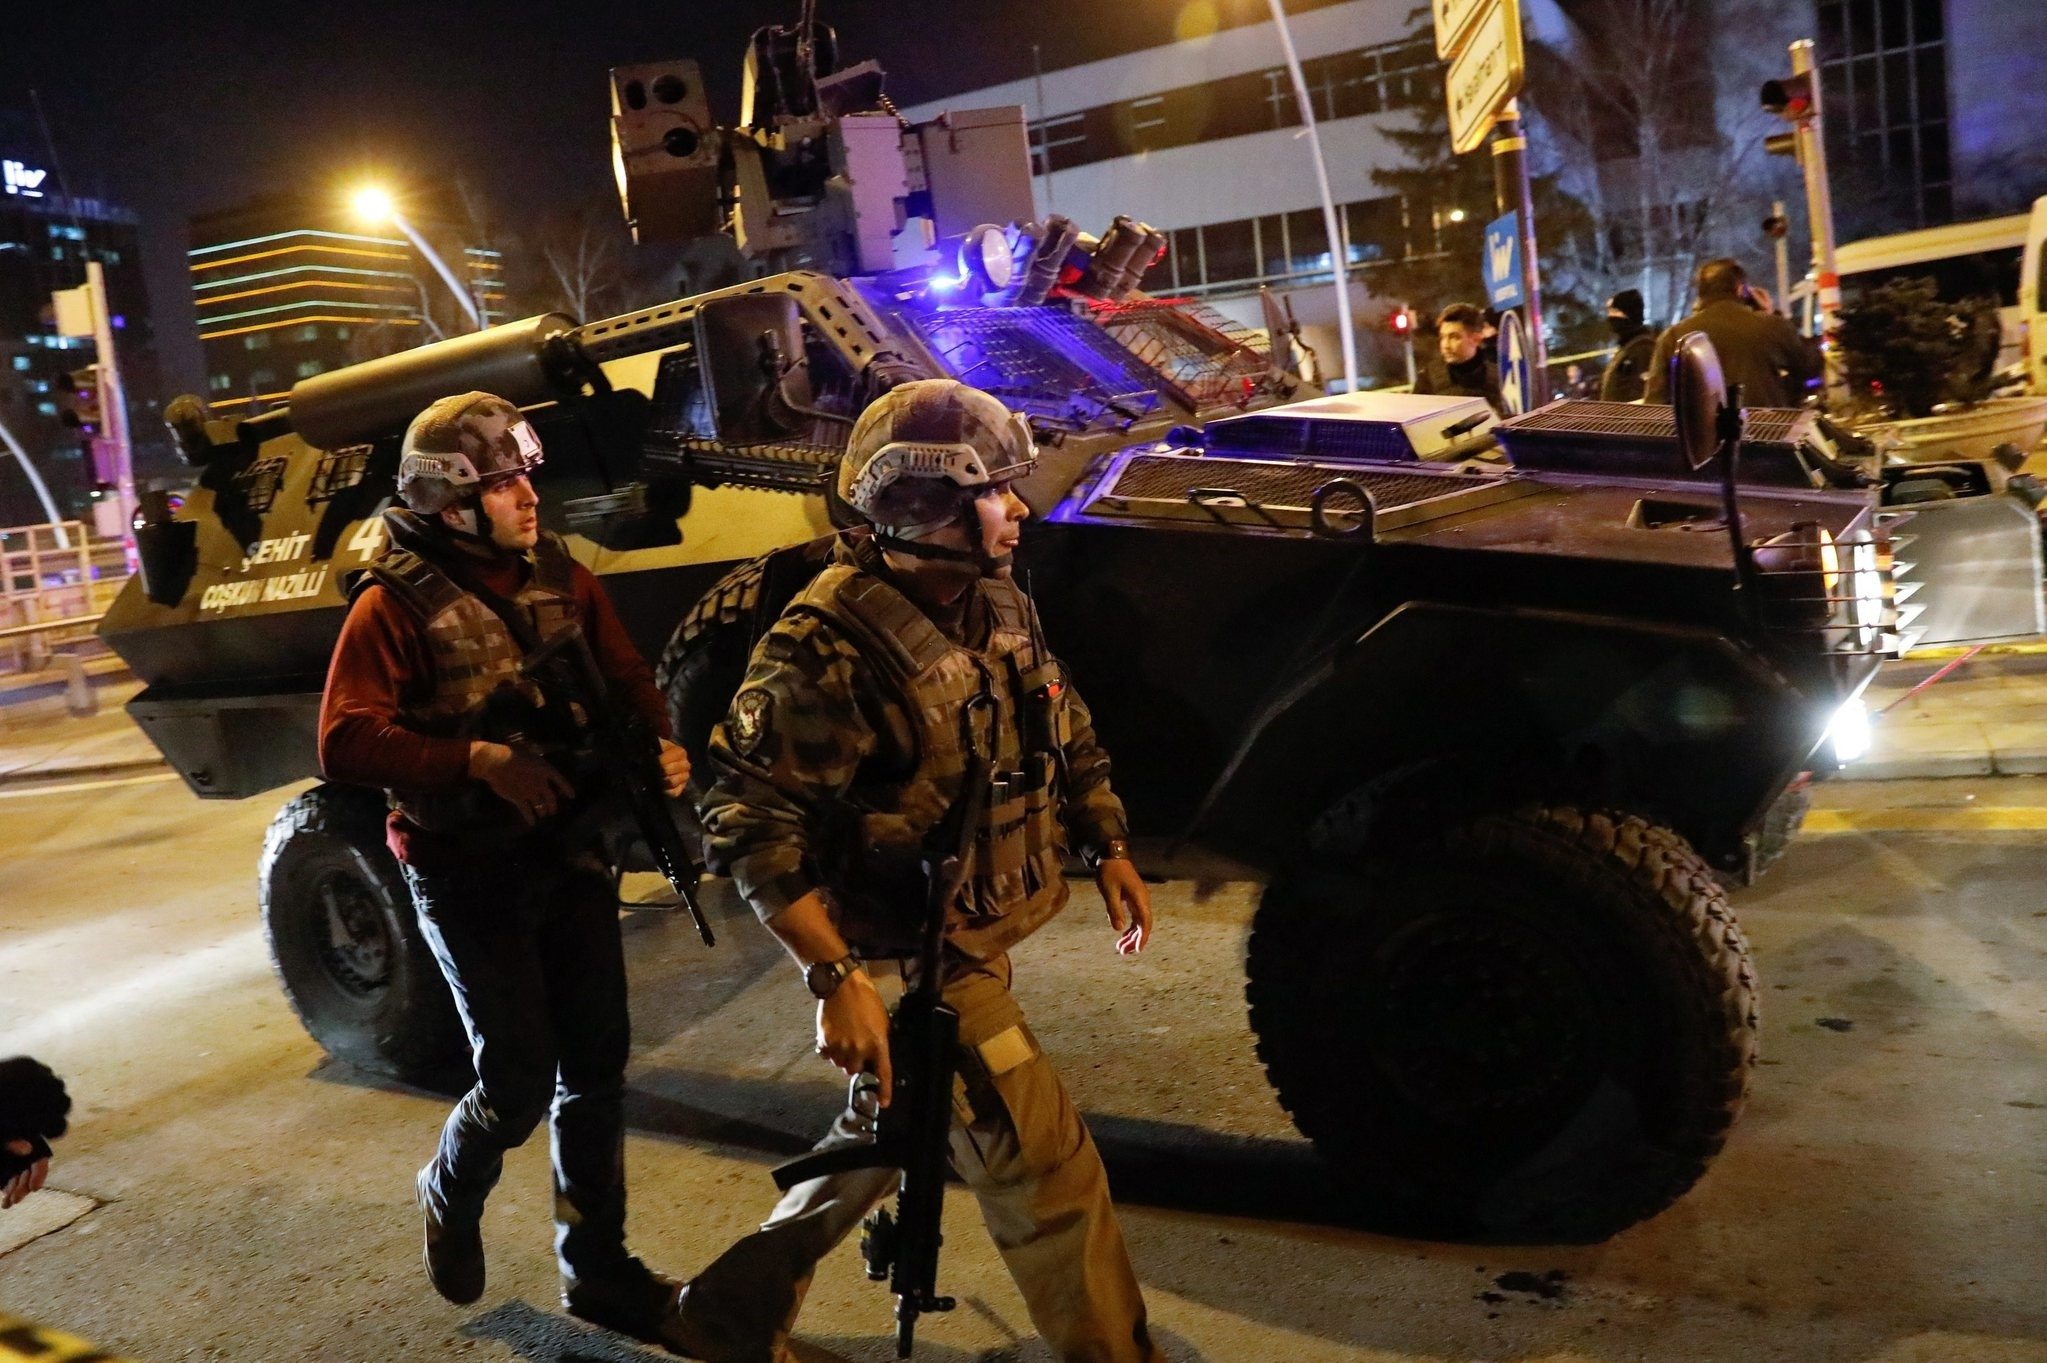 Police secure the area near an art gallery where the Russian Ambassador to Turkey Andrei Karlov was shot in Ankara, Turkey, December 19, 2016. (REUTERS Photo)